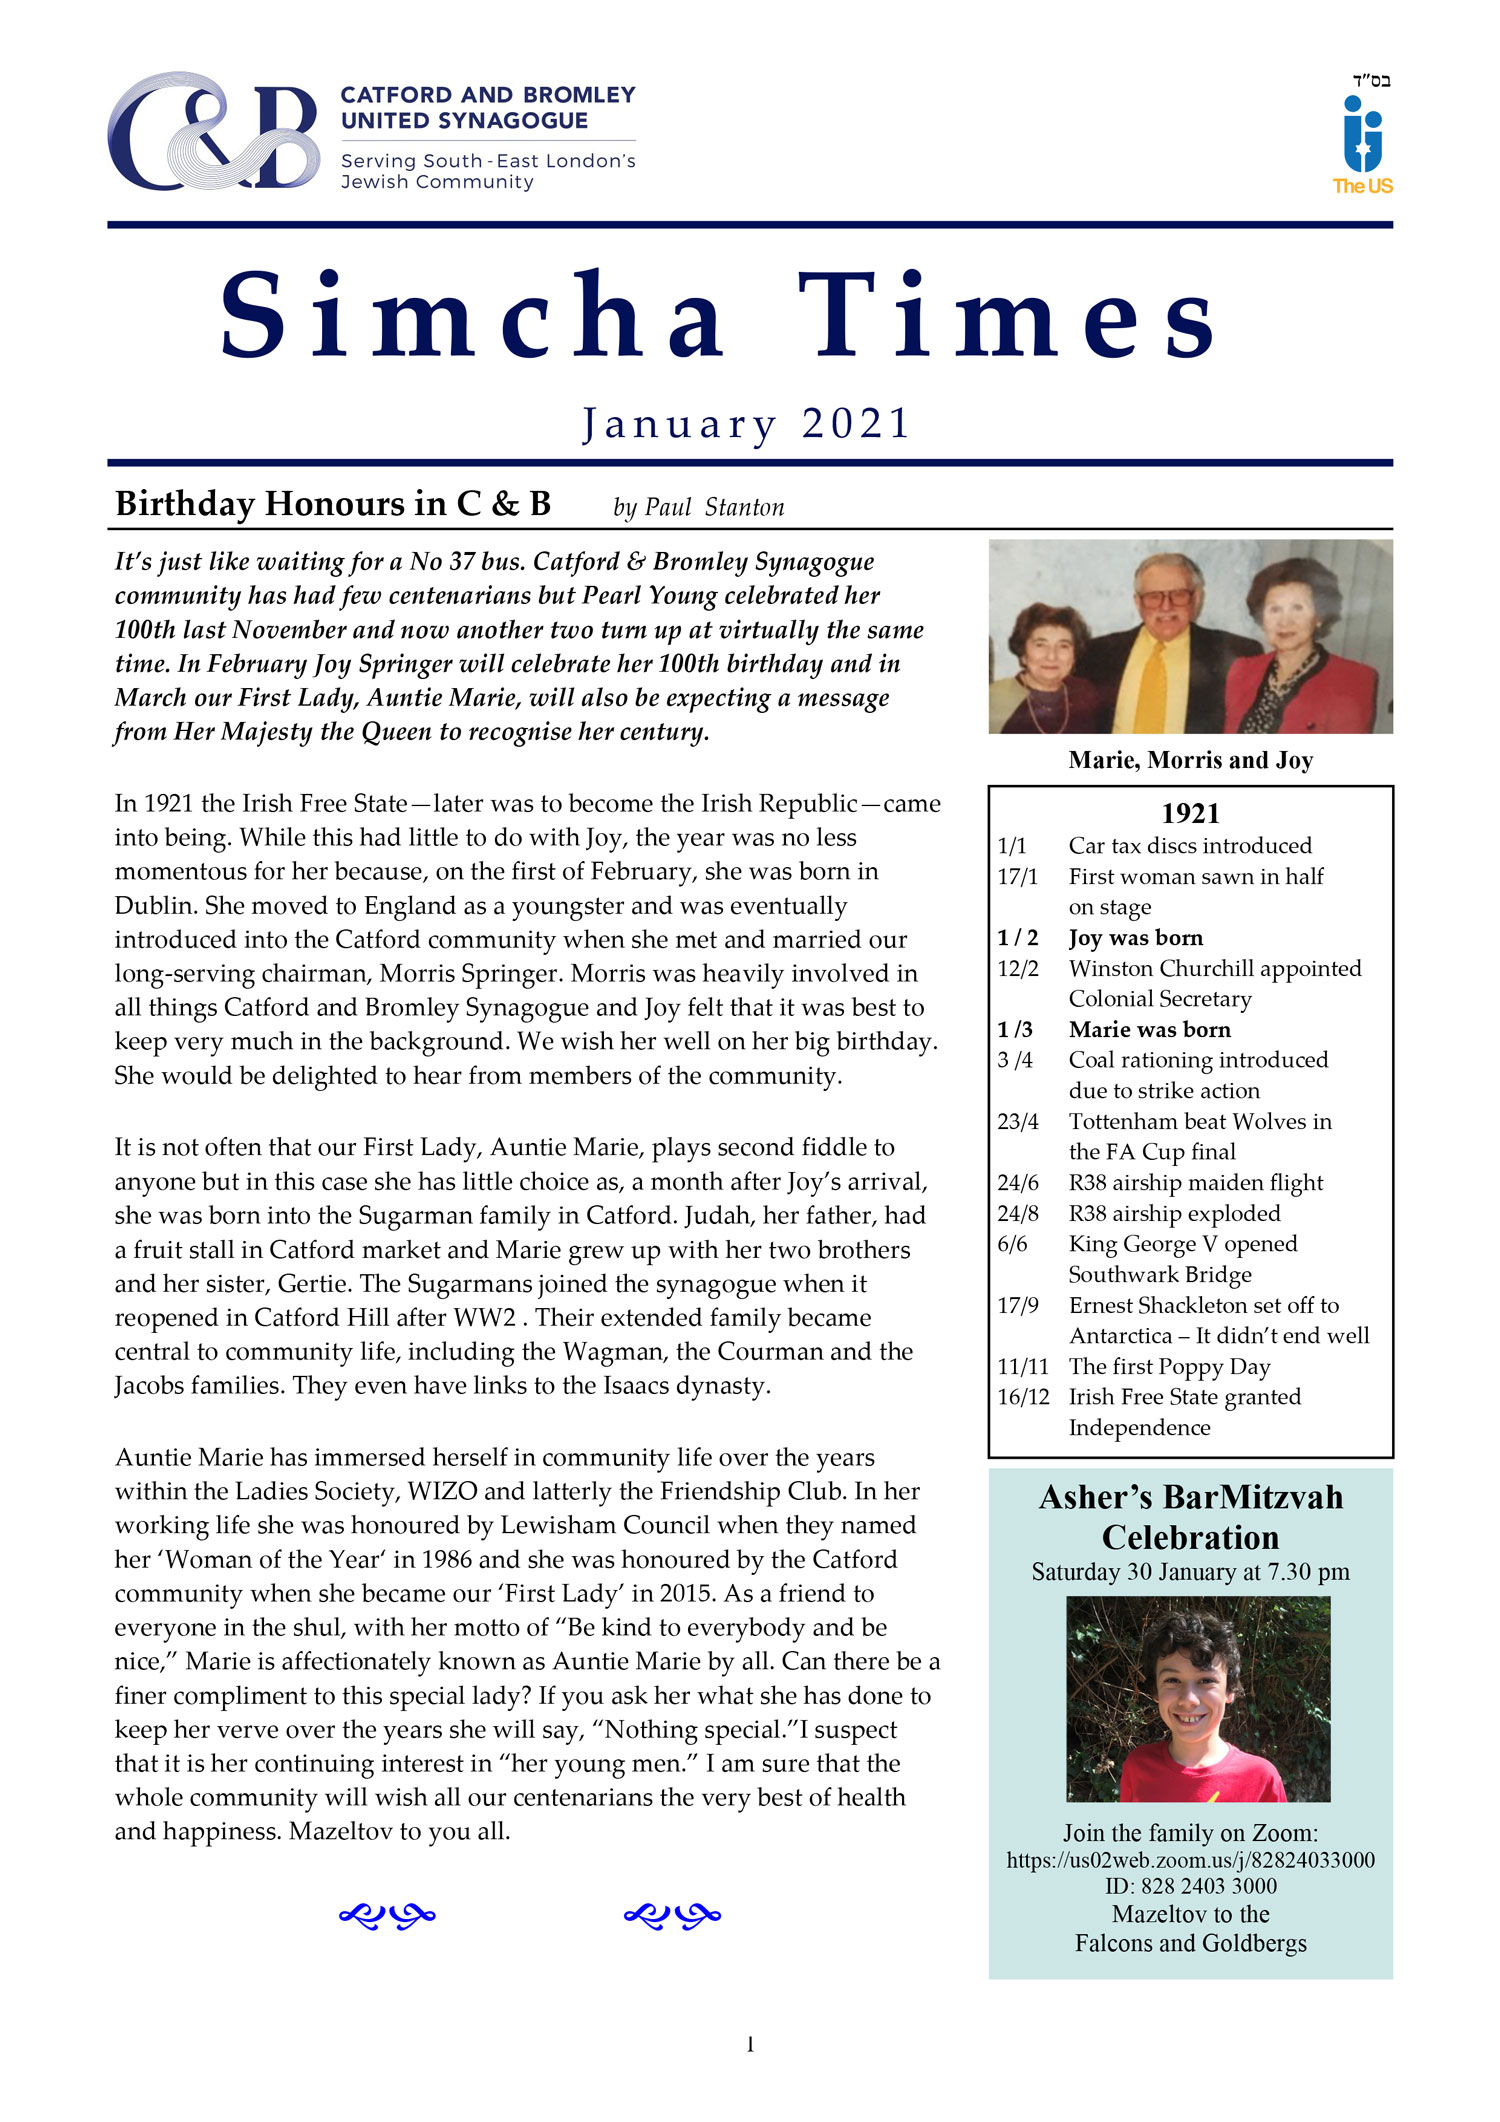 Catford and Bromley Synagogue Simcha Times January 2021